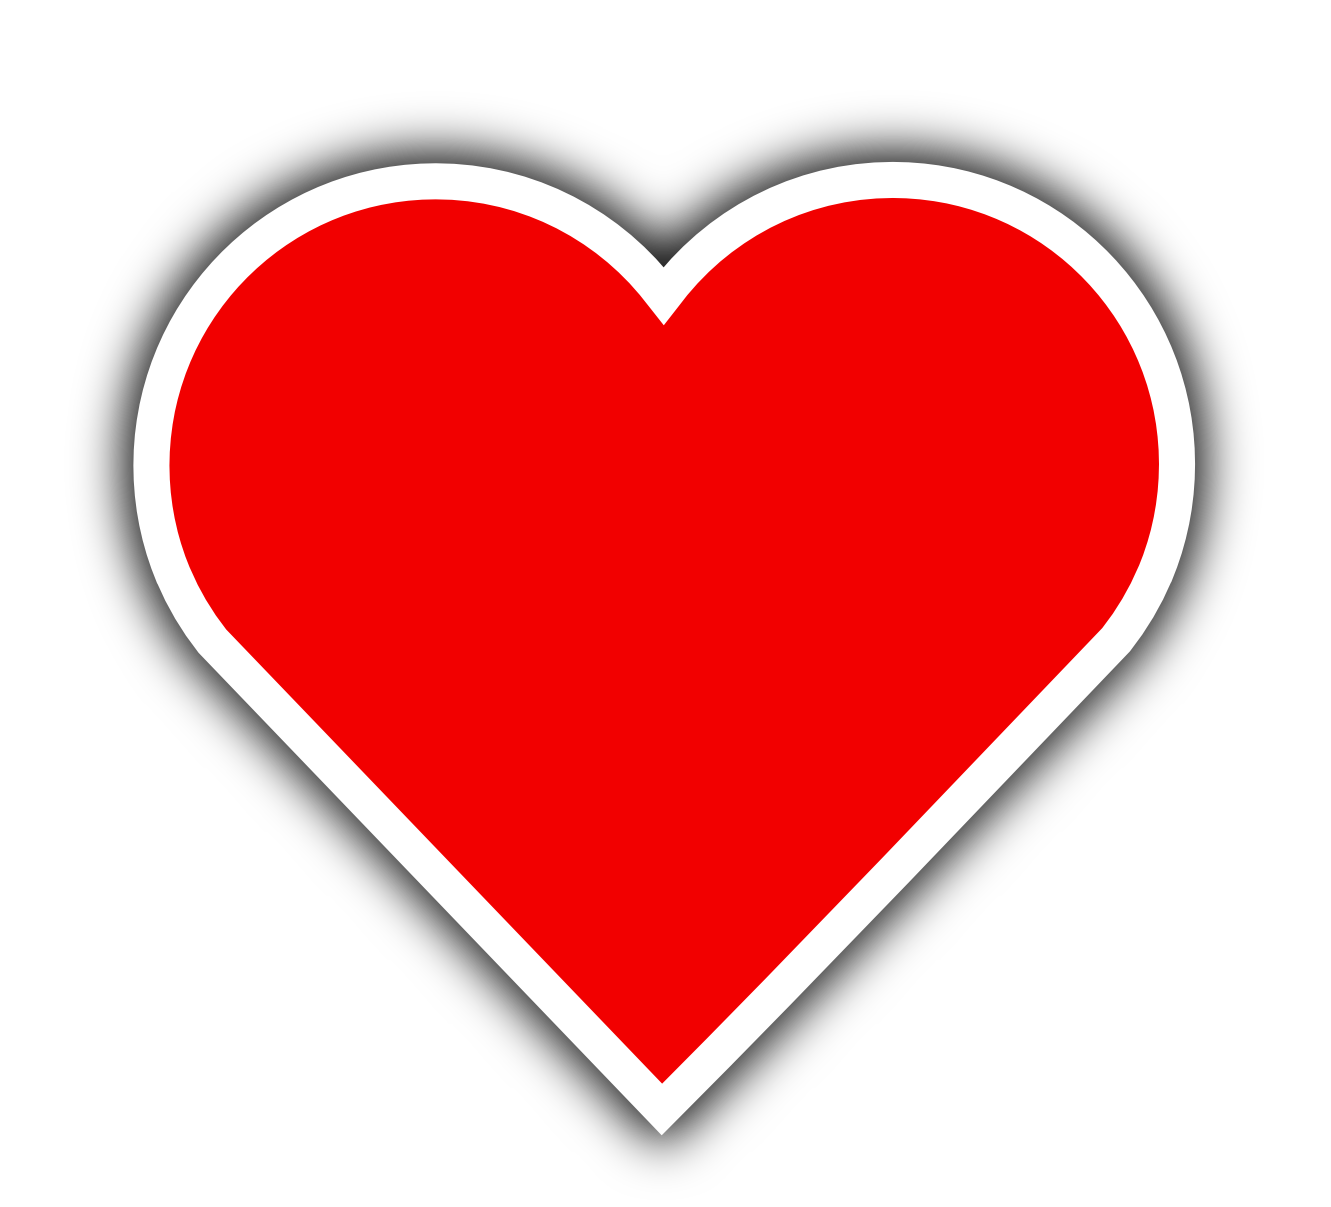 heart_PNG704.png